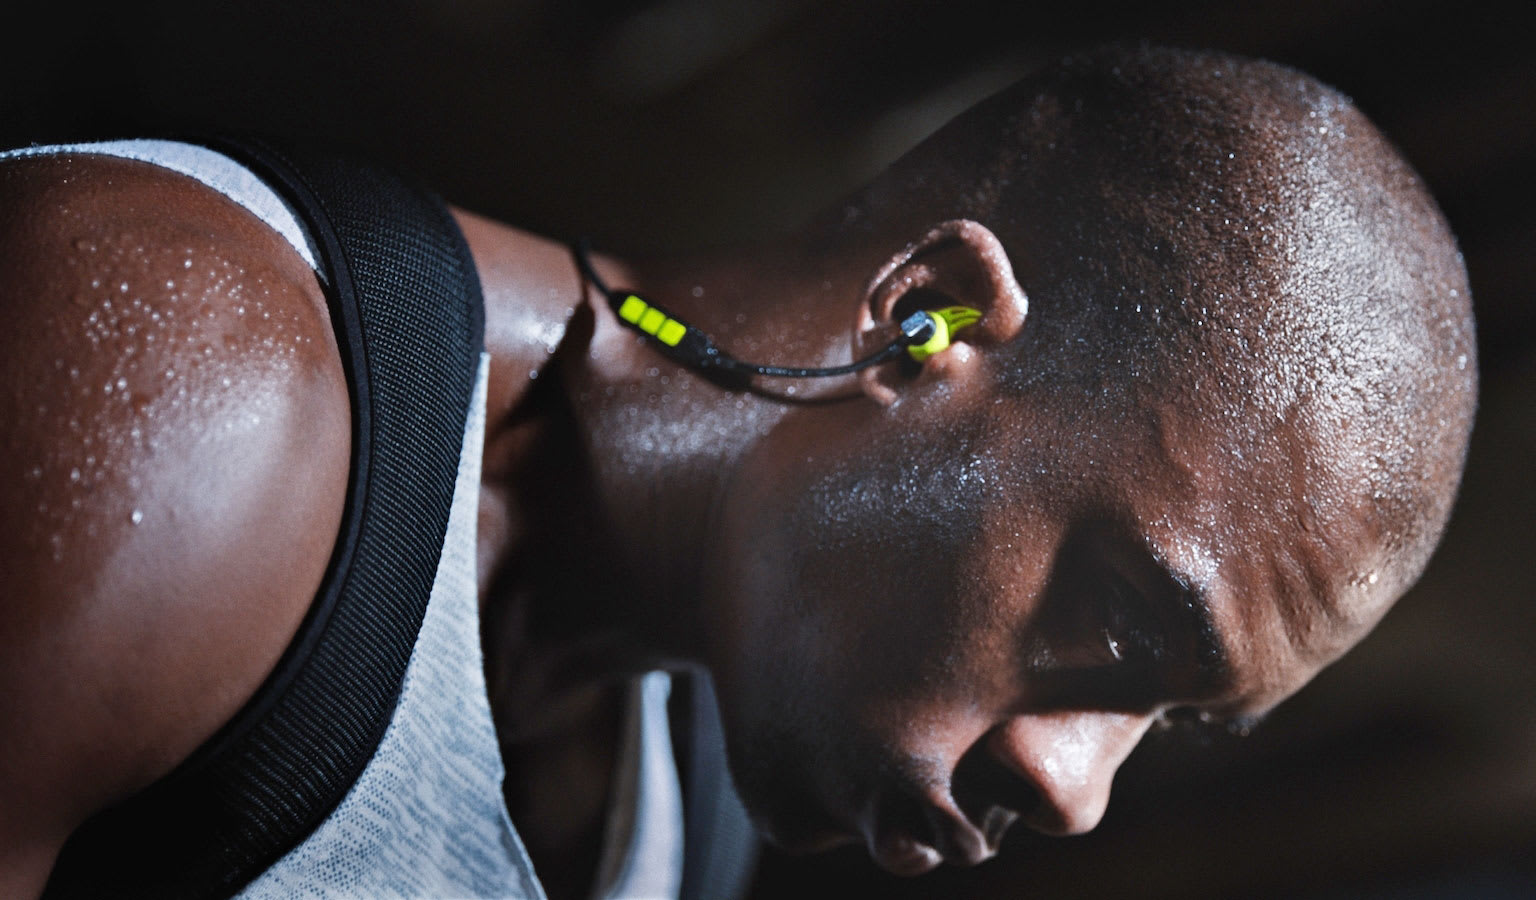 Sennheiser's latest wireless earbuds are built for the gym